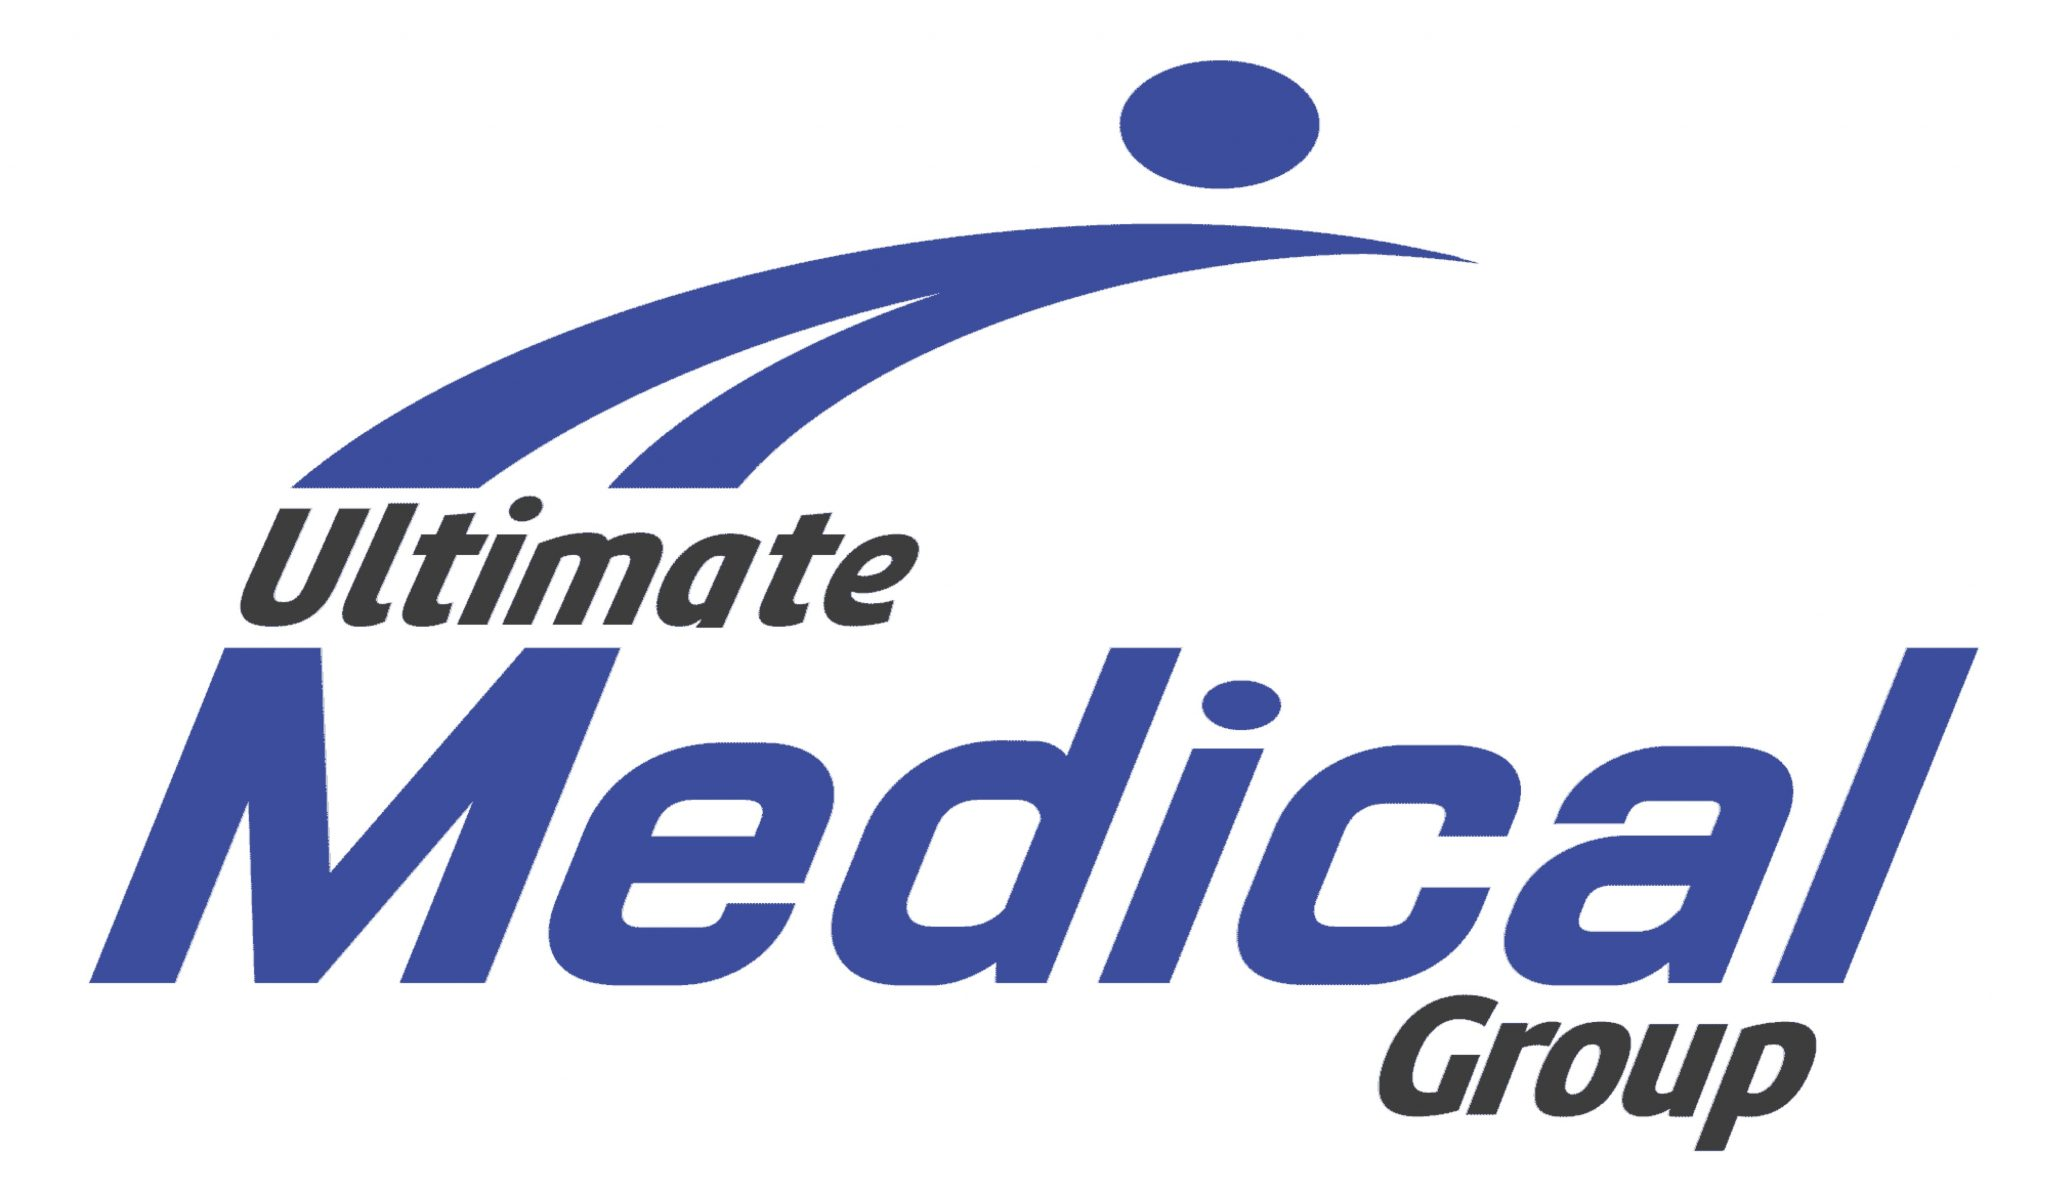 Ultimate Medical Group now offering stem cell therapy, PRP therapy and Prolotherapy